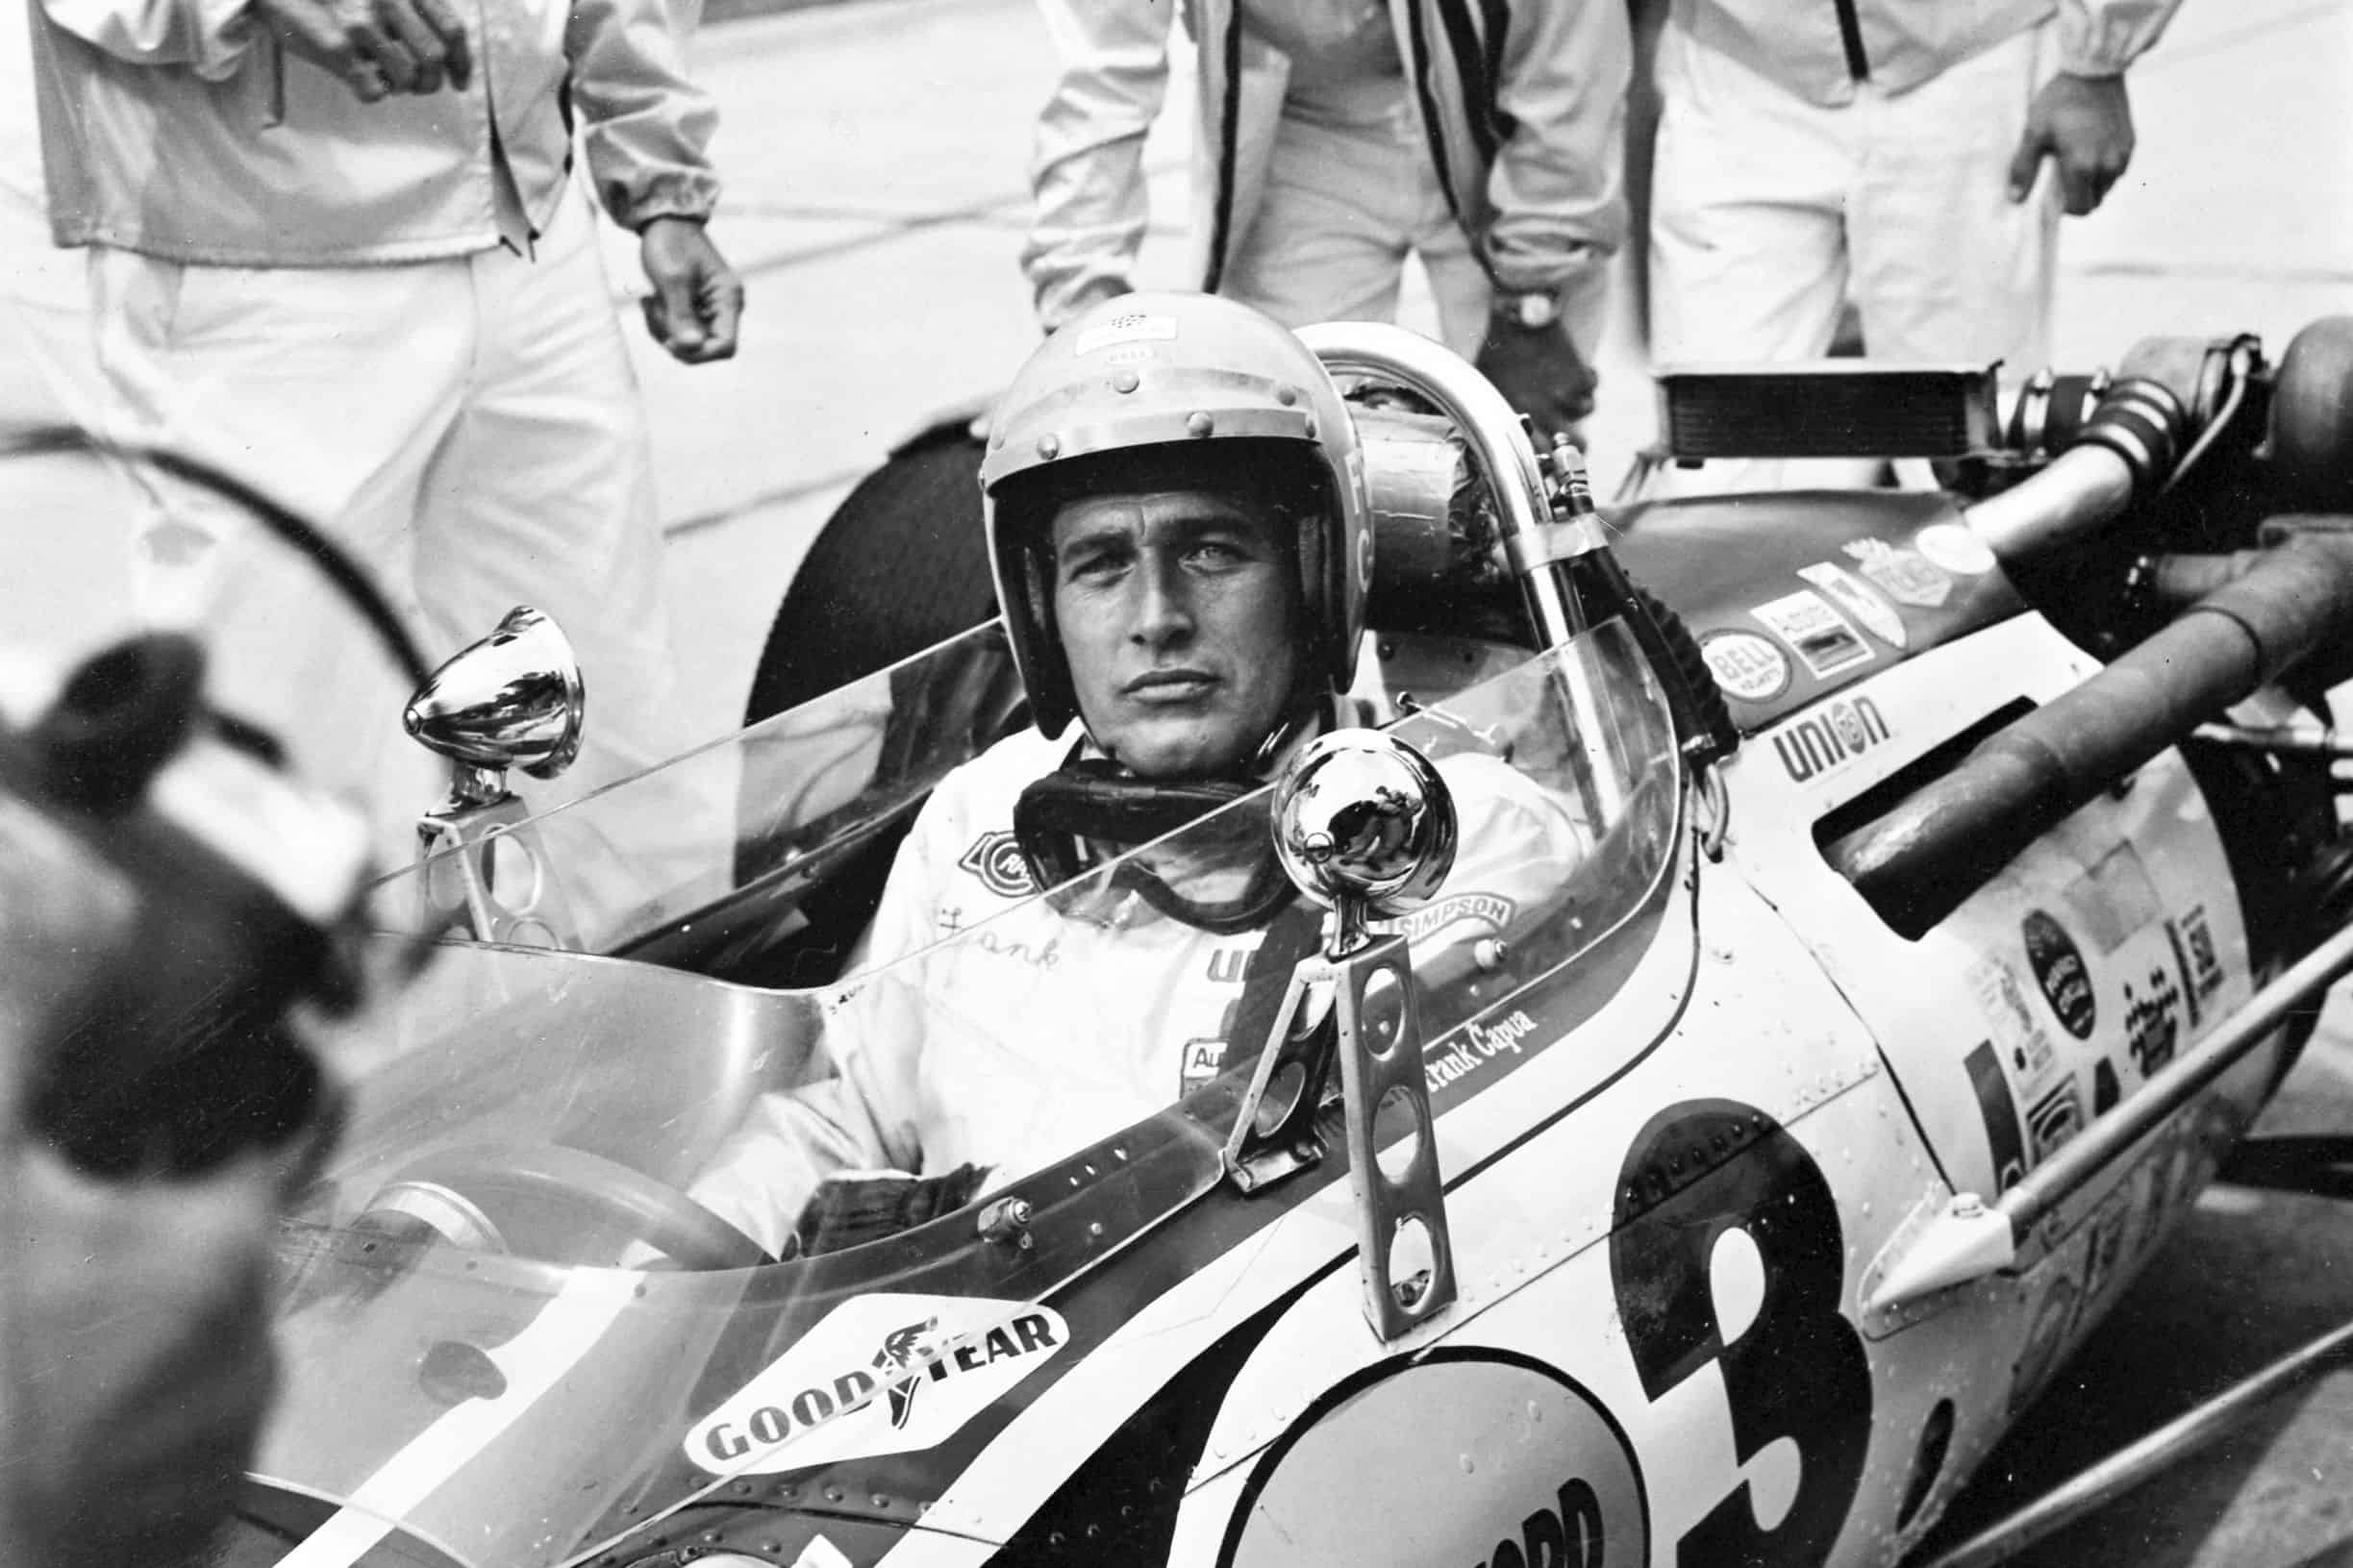 favorite drivers, Heroes, yesterday and today, ClassicCars.com Journal